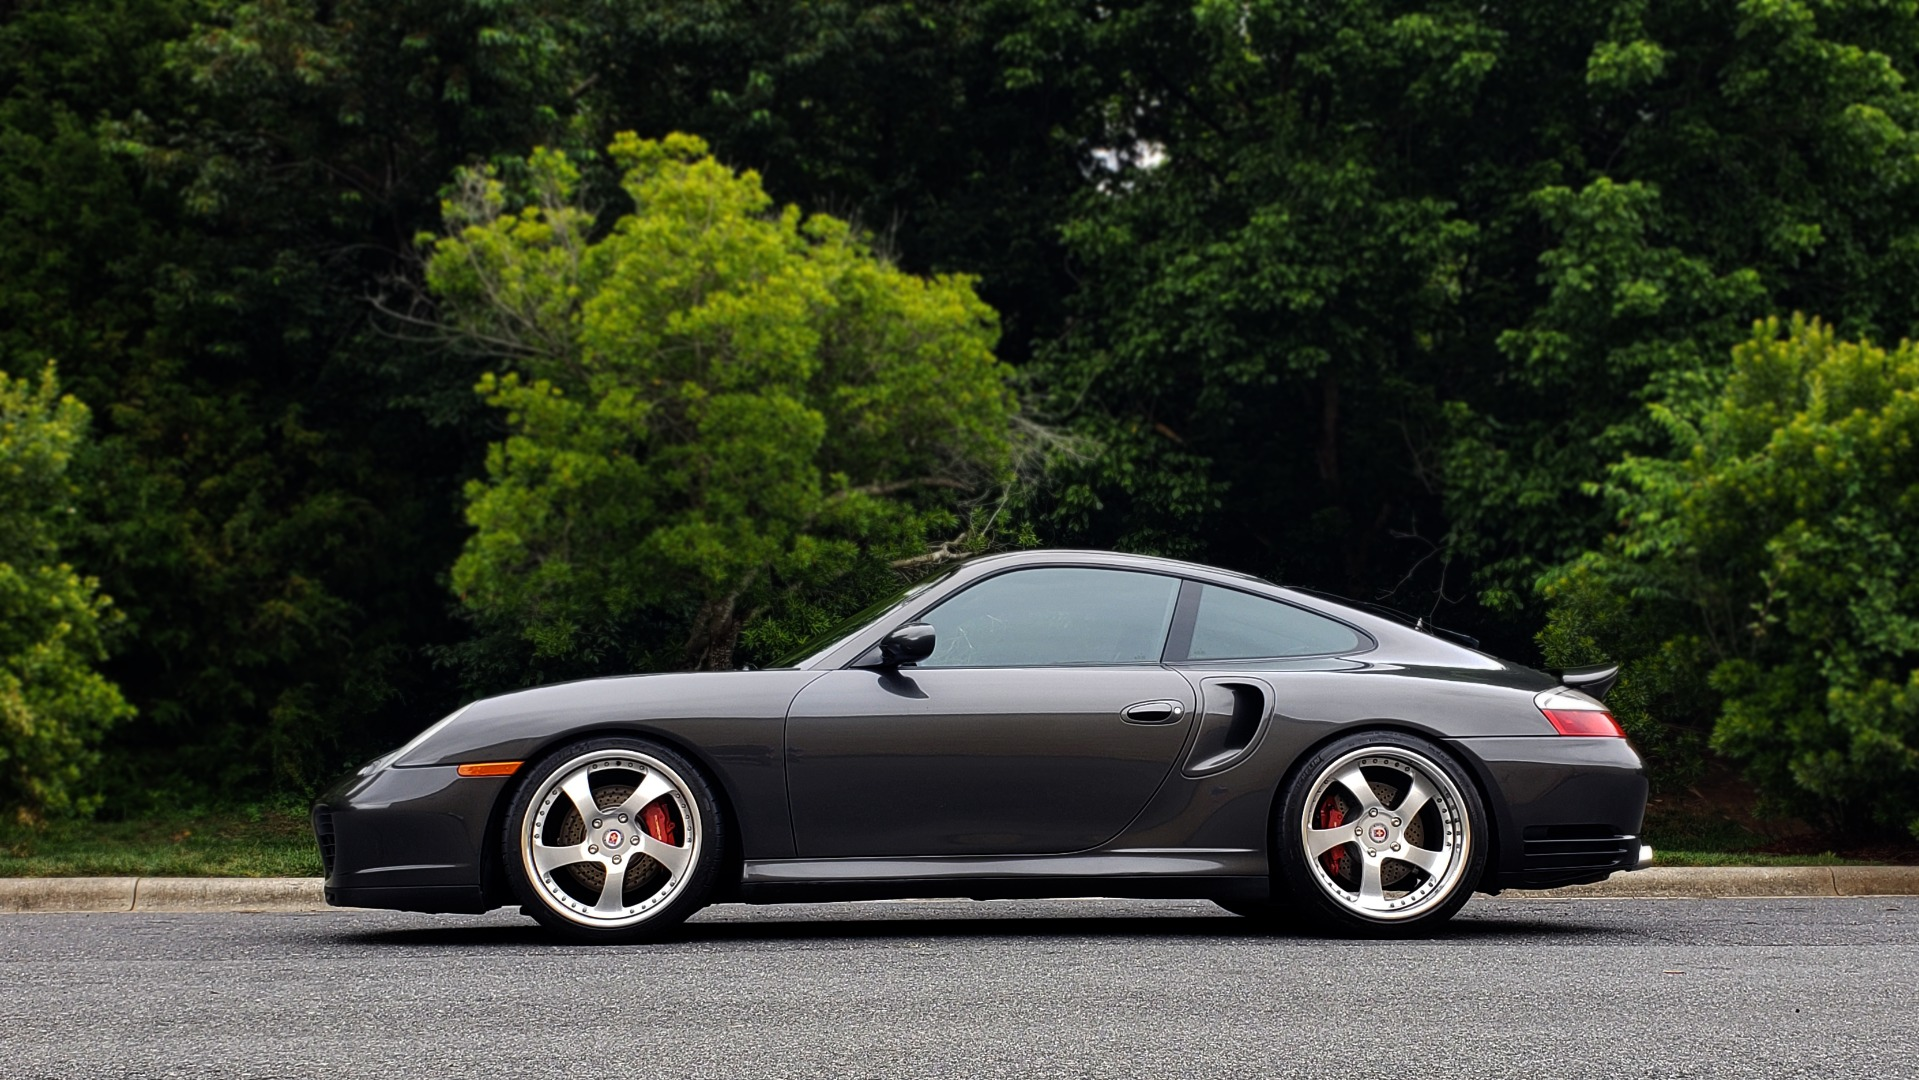 Used 2002 Porsche 911 CARRERA TURBO COUPE / 6-SPD MANUAL / PERF UPGRADES & CUSTOM TUNE for sale Sold at Formula Imports in Charlotte NC 28227 4